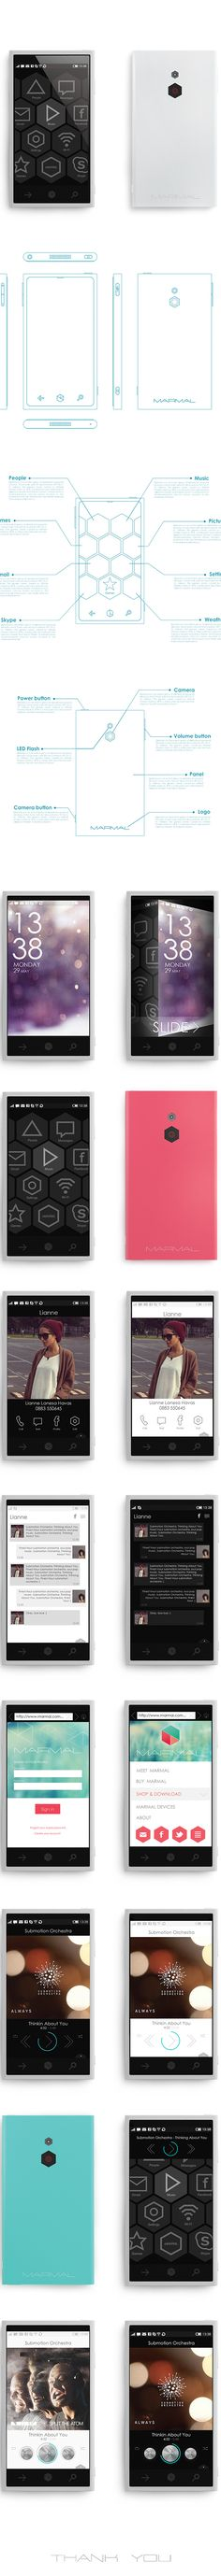 Mobile Software Marmal by Monika Kusheva, via Behance